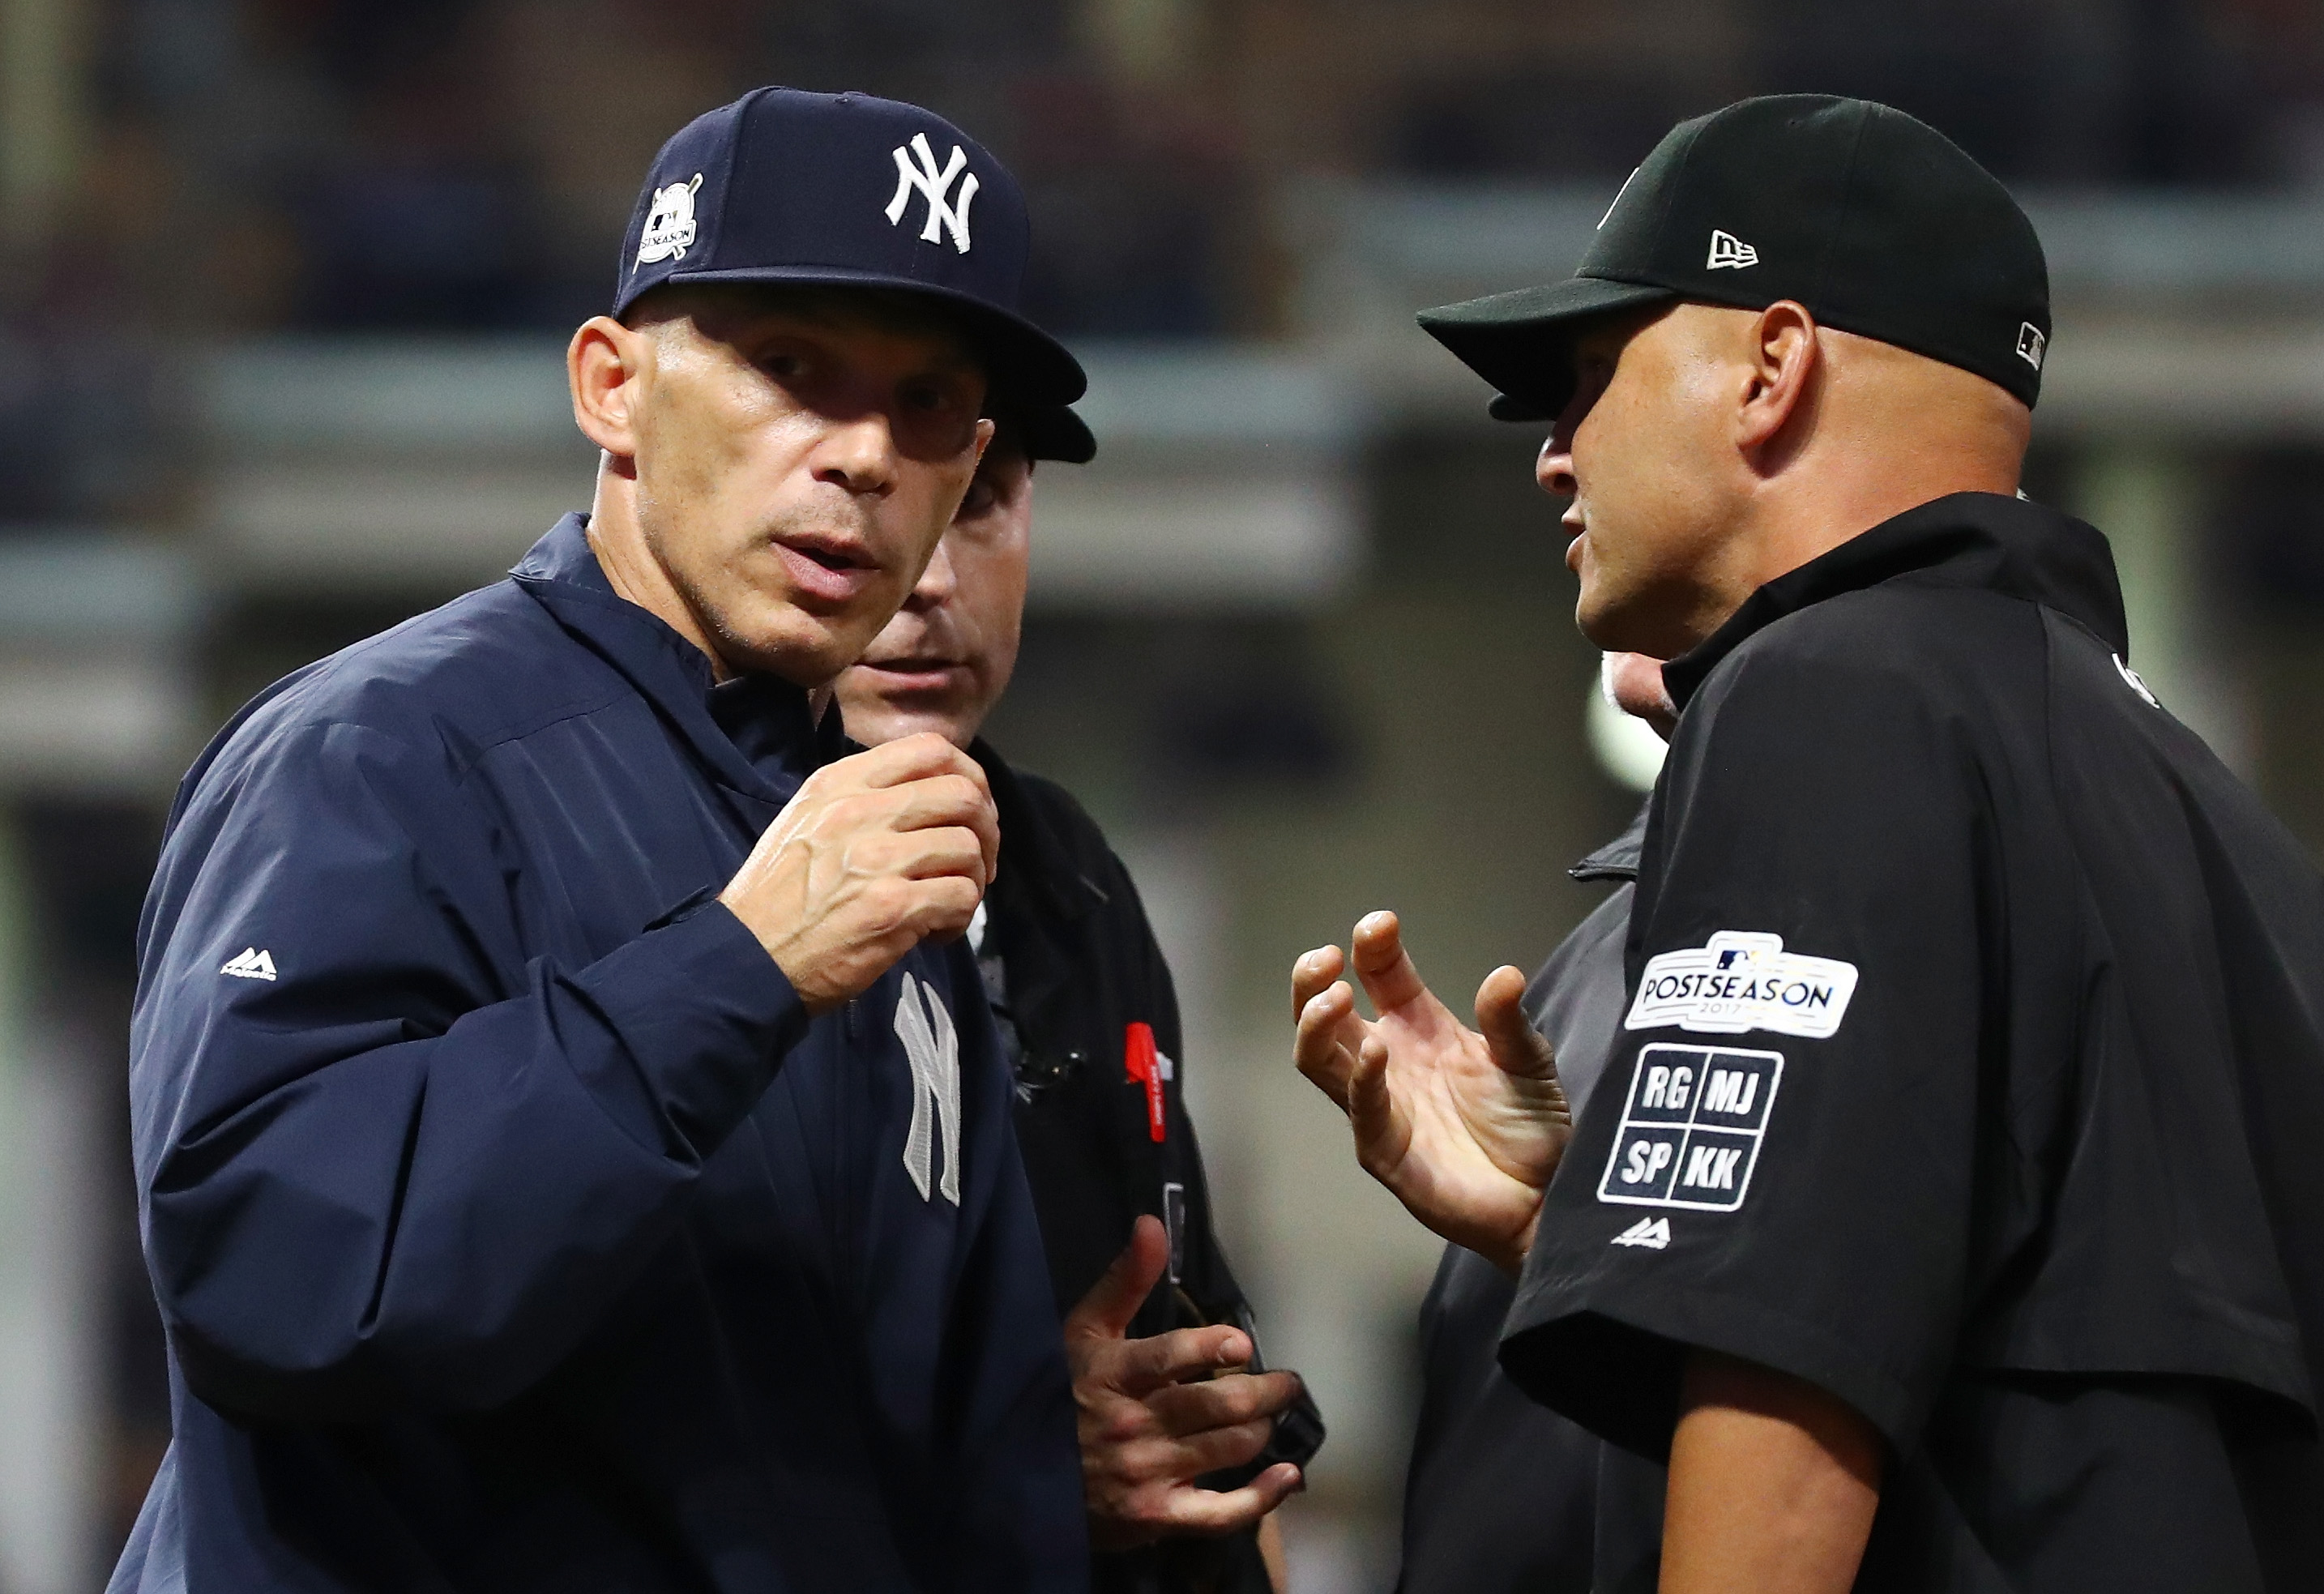 Yankees' Girardi on Game 2 loss: 'I feel terrible about it'